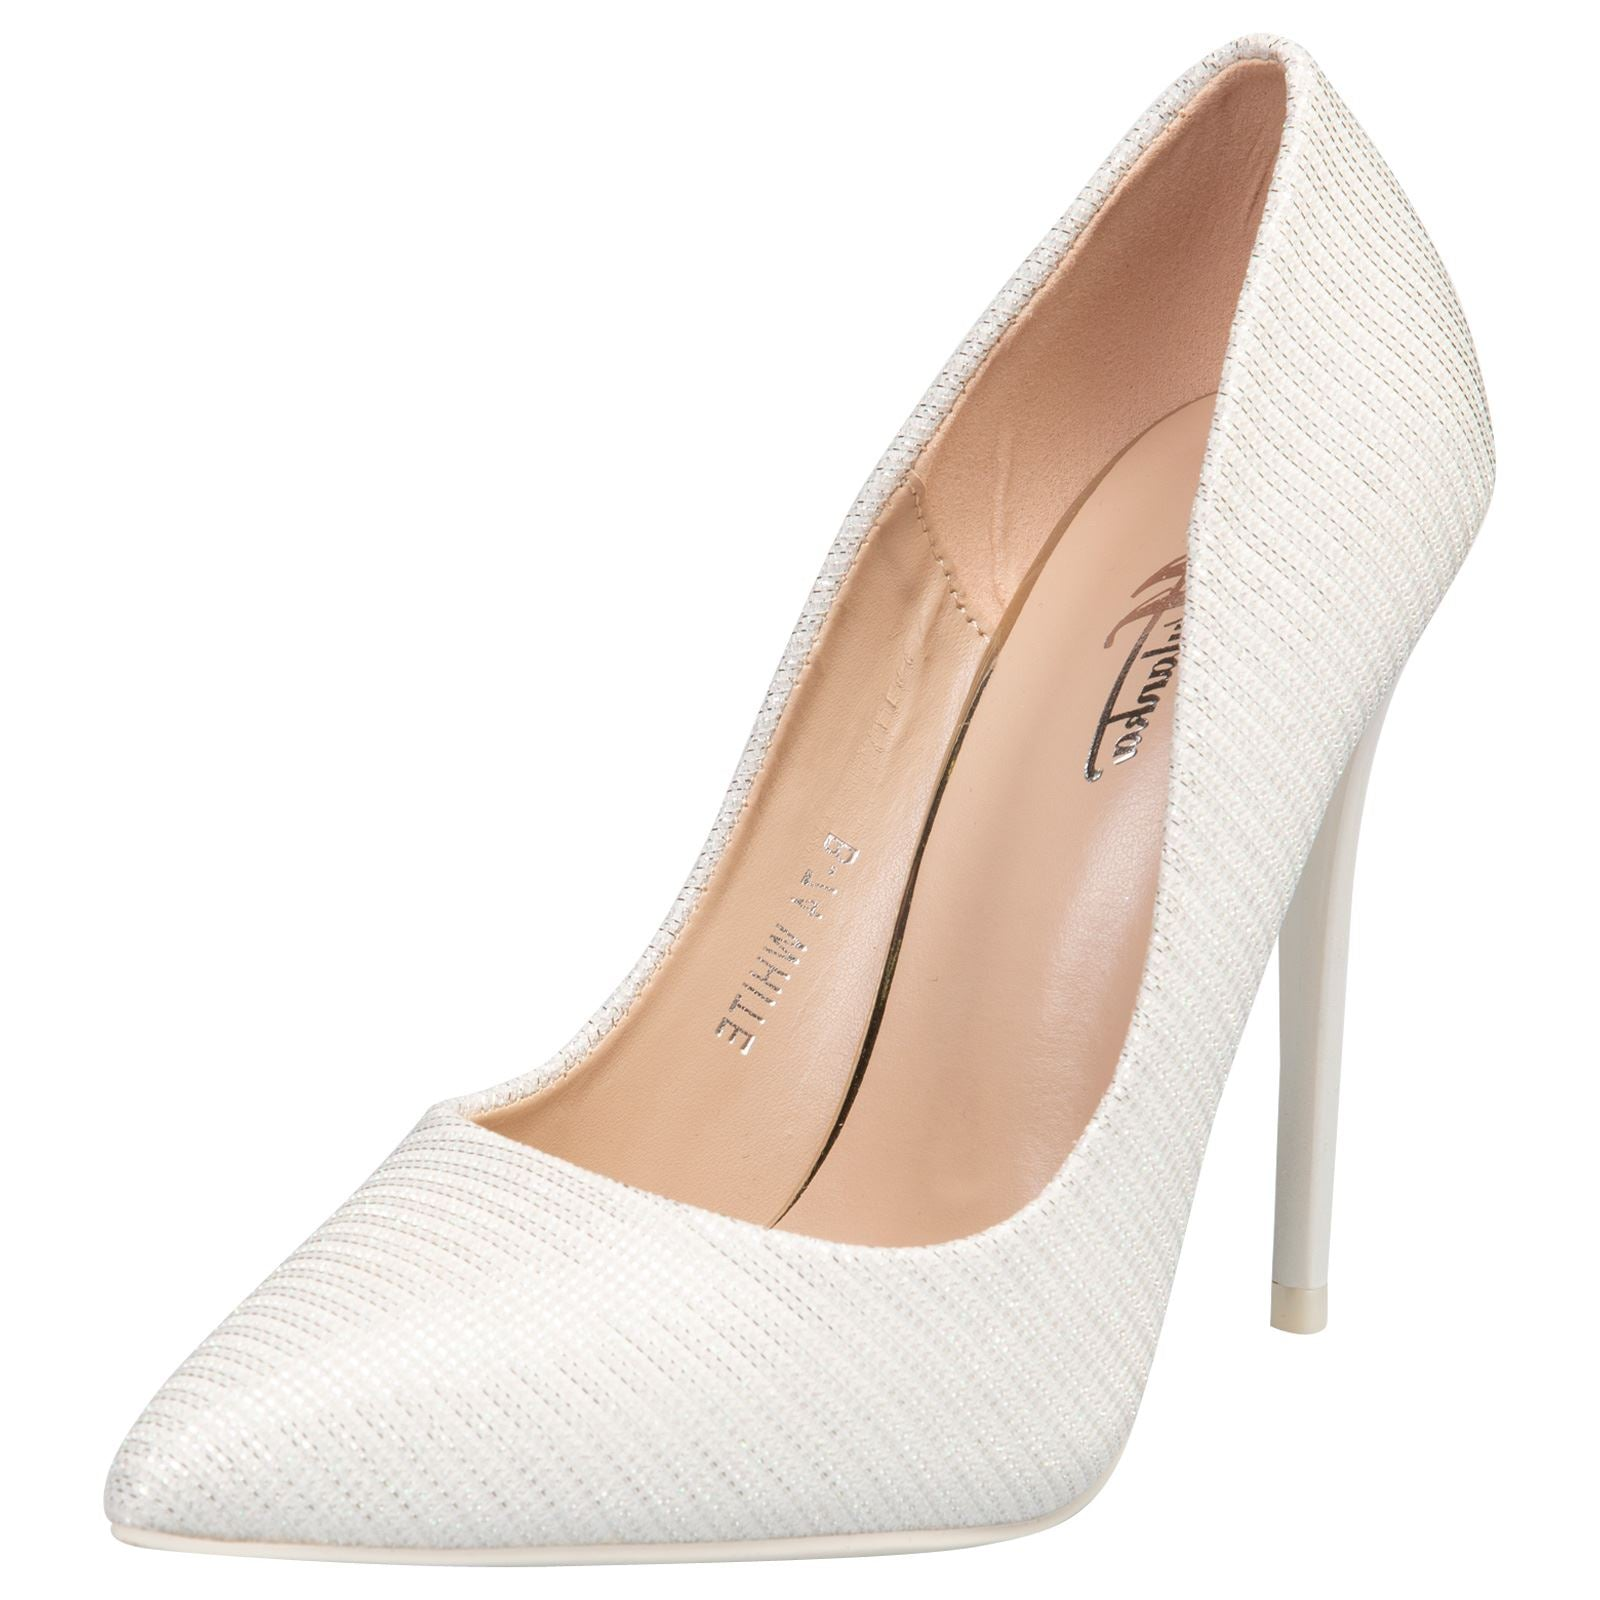 Laverne Pointed Toe Court Shoes in White Shimmer - Feet First Fashion